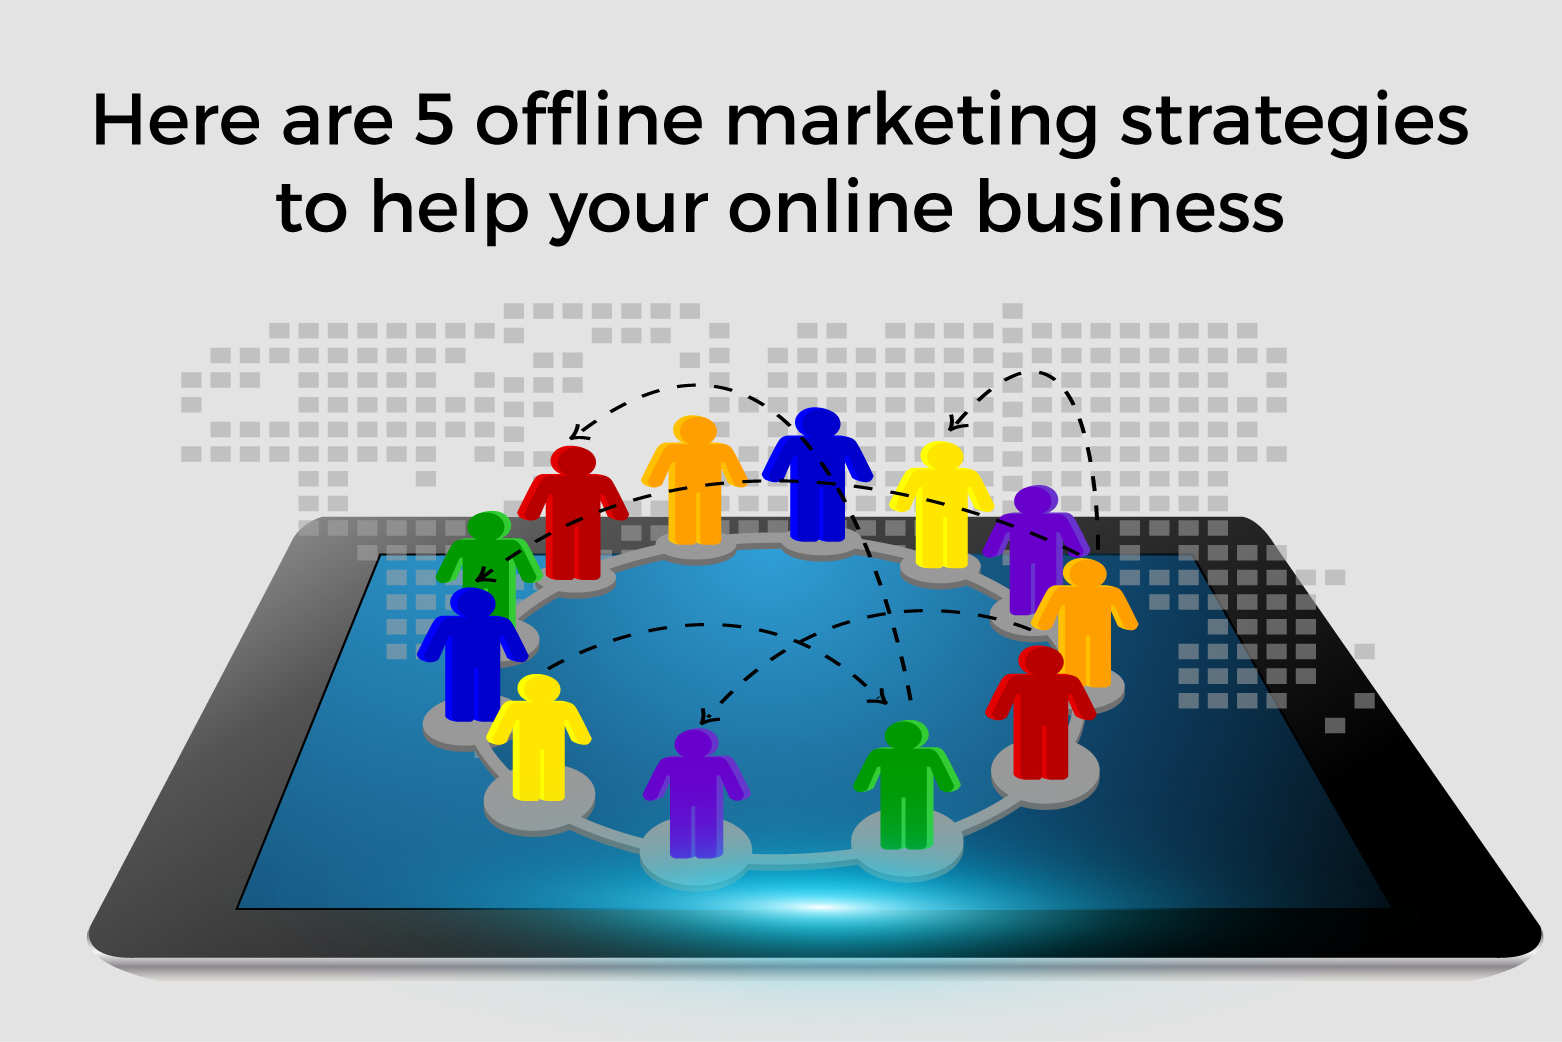 Is Offline Marketing Dead? 5 Strategies to Help Your Business